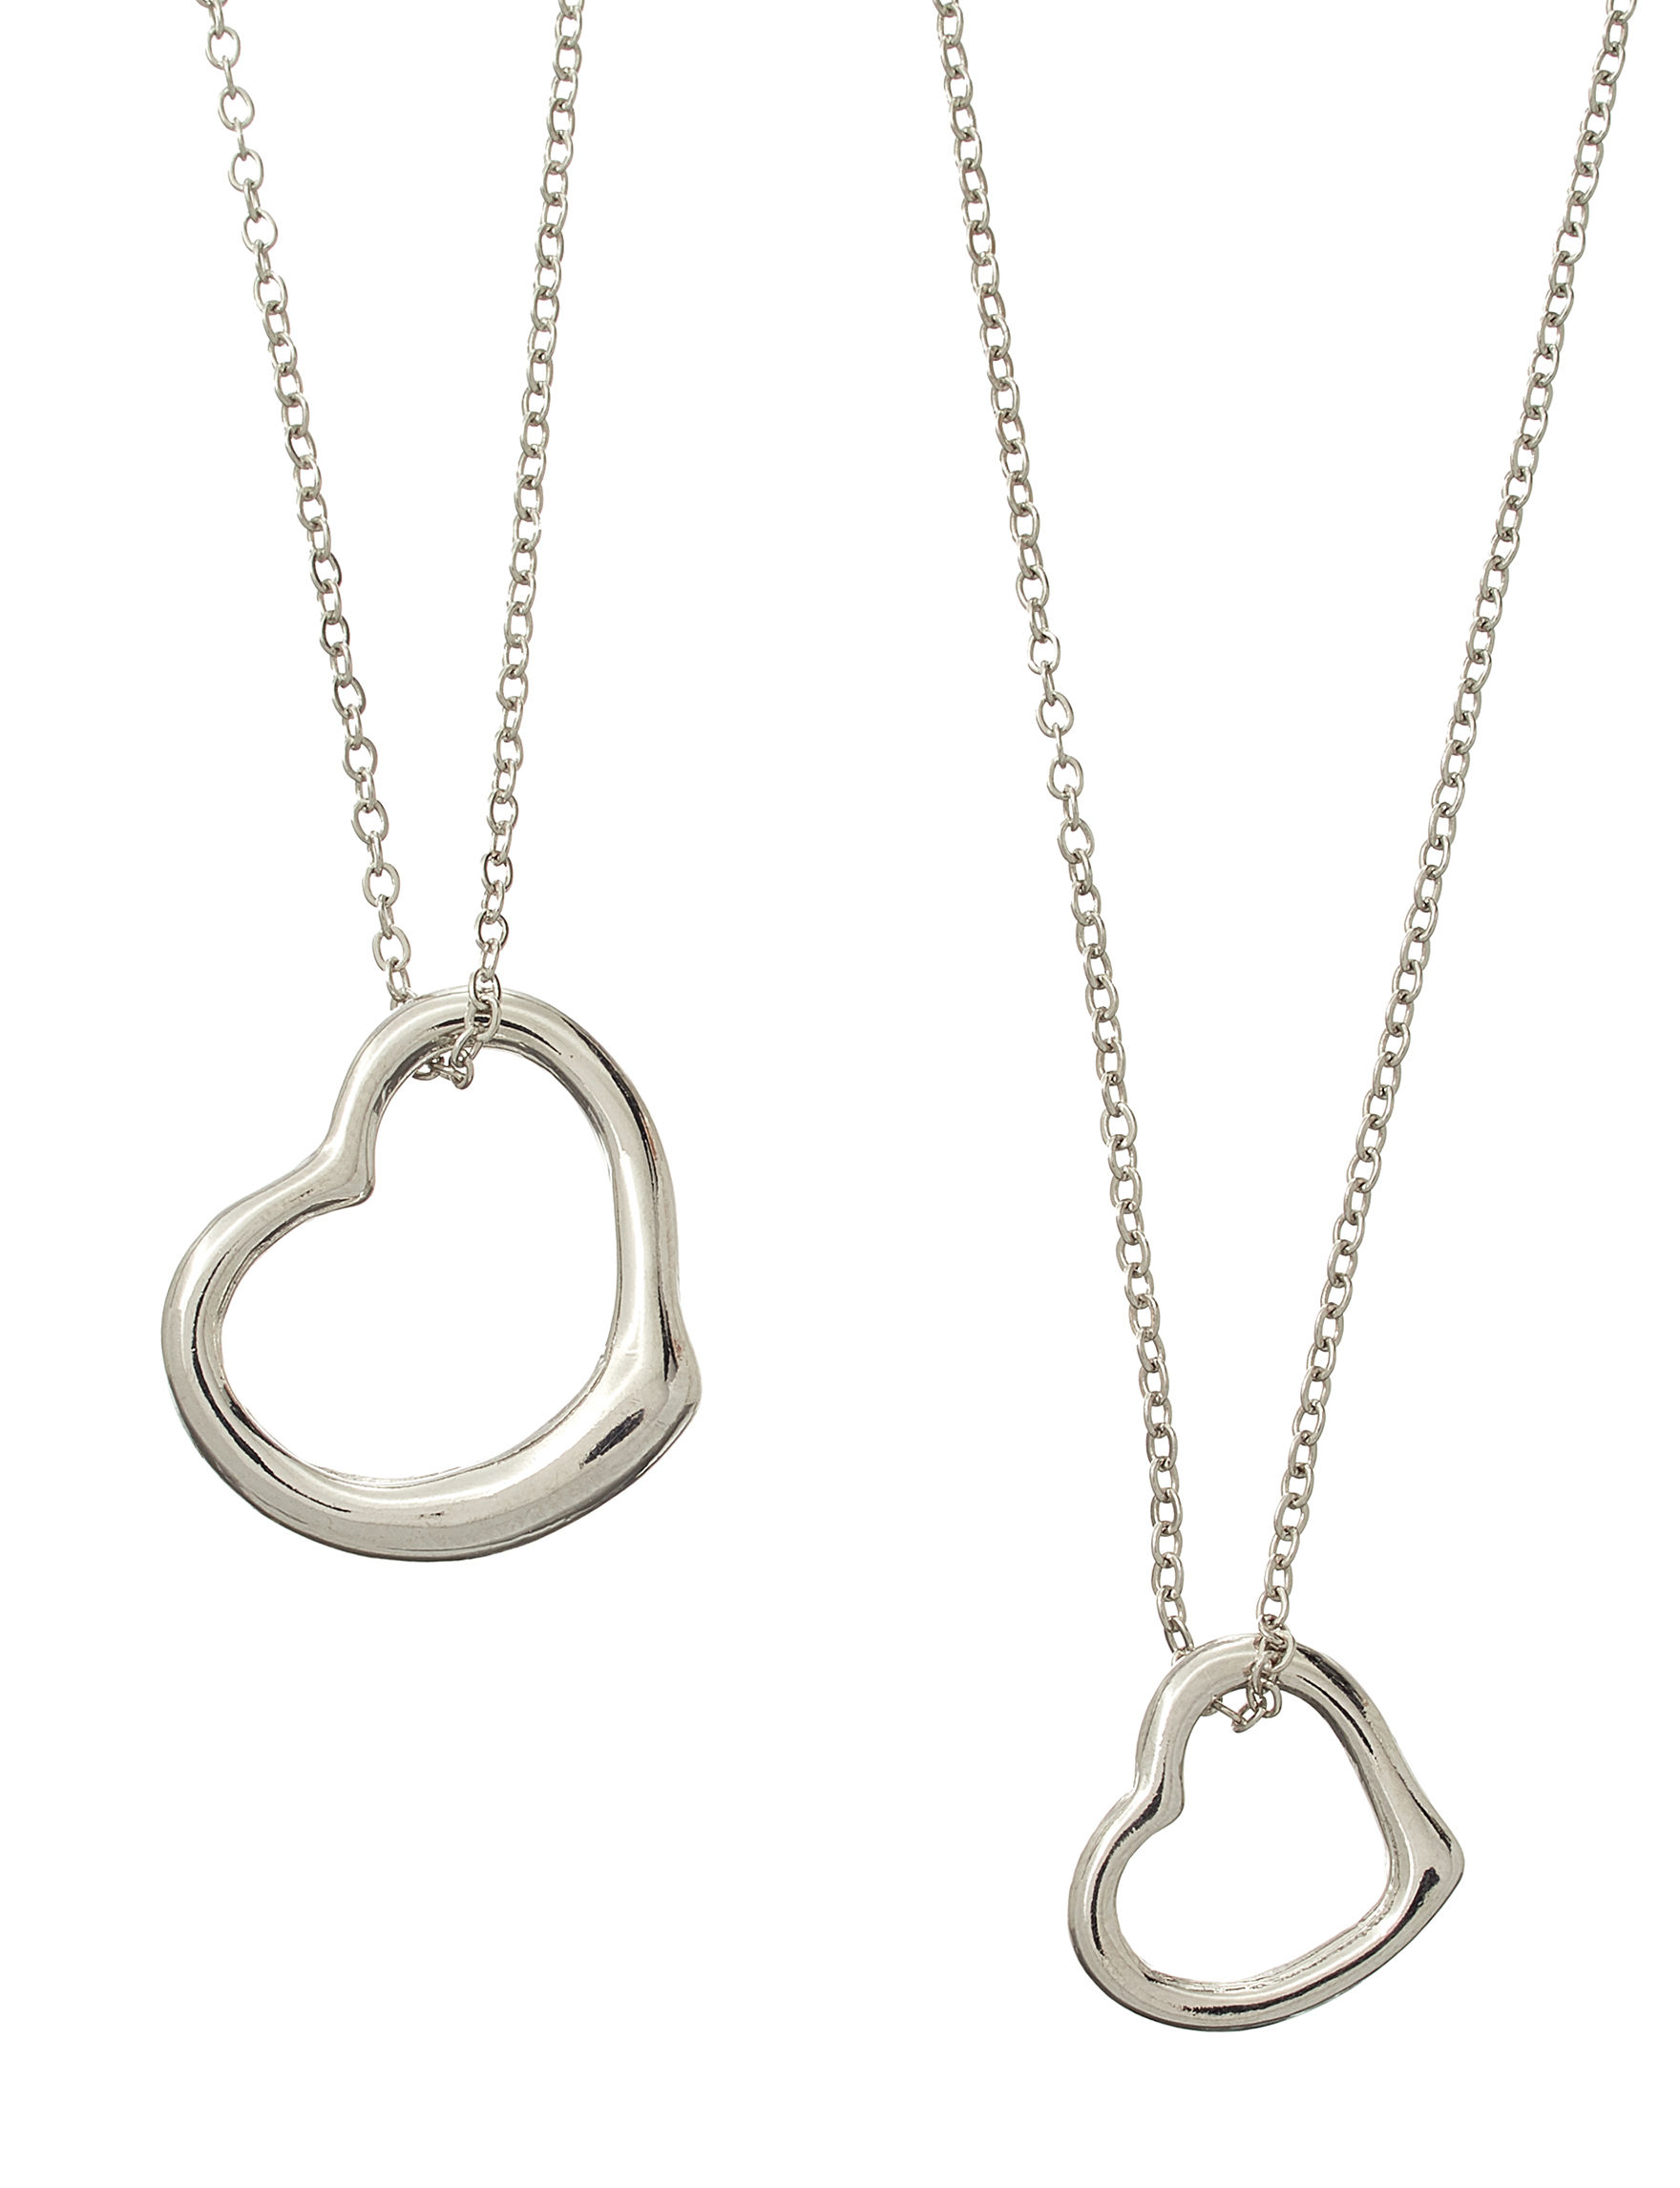 Tanya Silver Necklaces & Pendants Fashion Jewelry